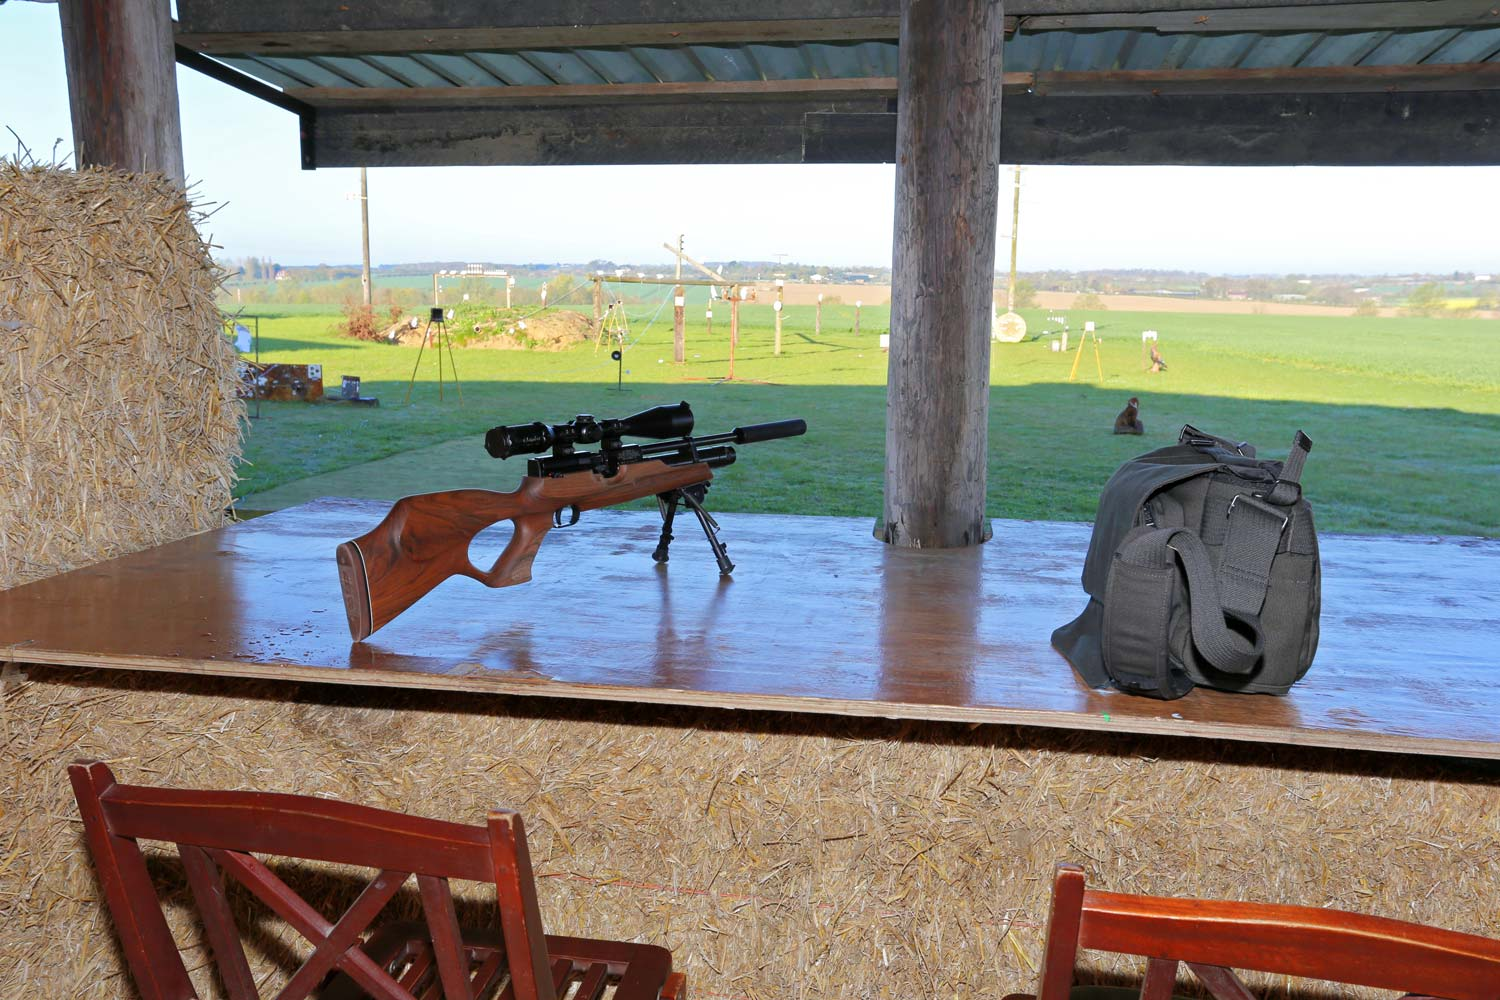 The Outdoor shooting range with covered positions